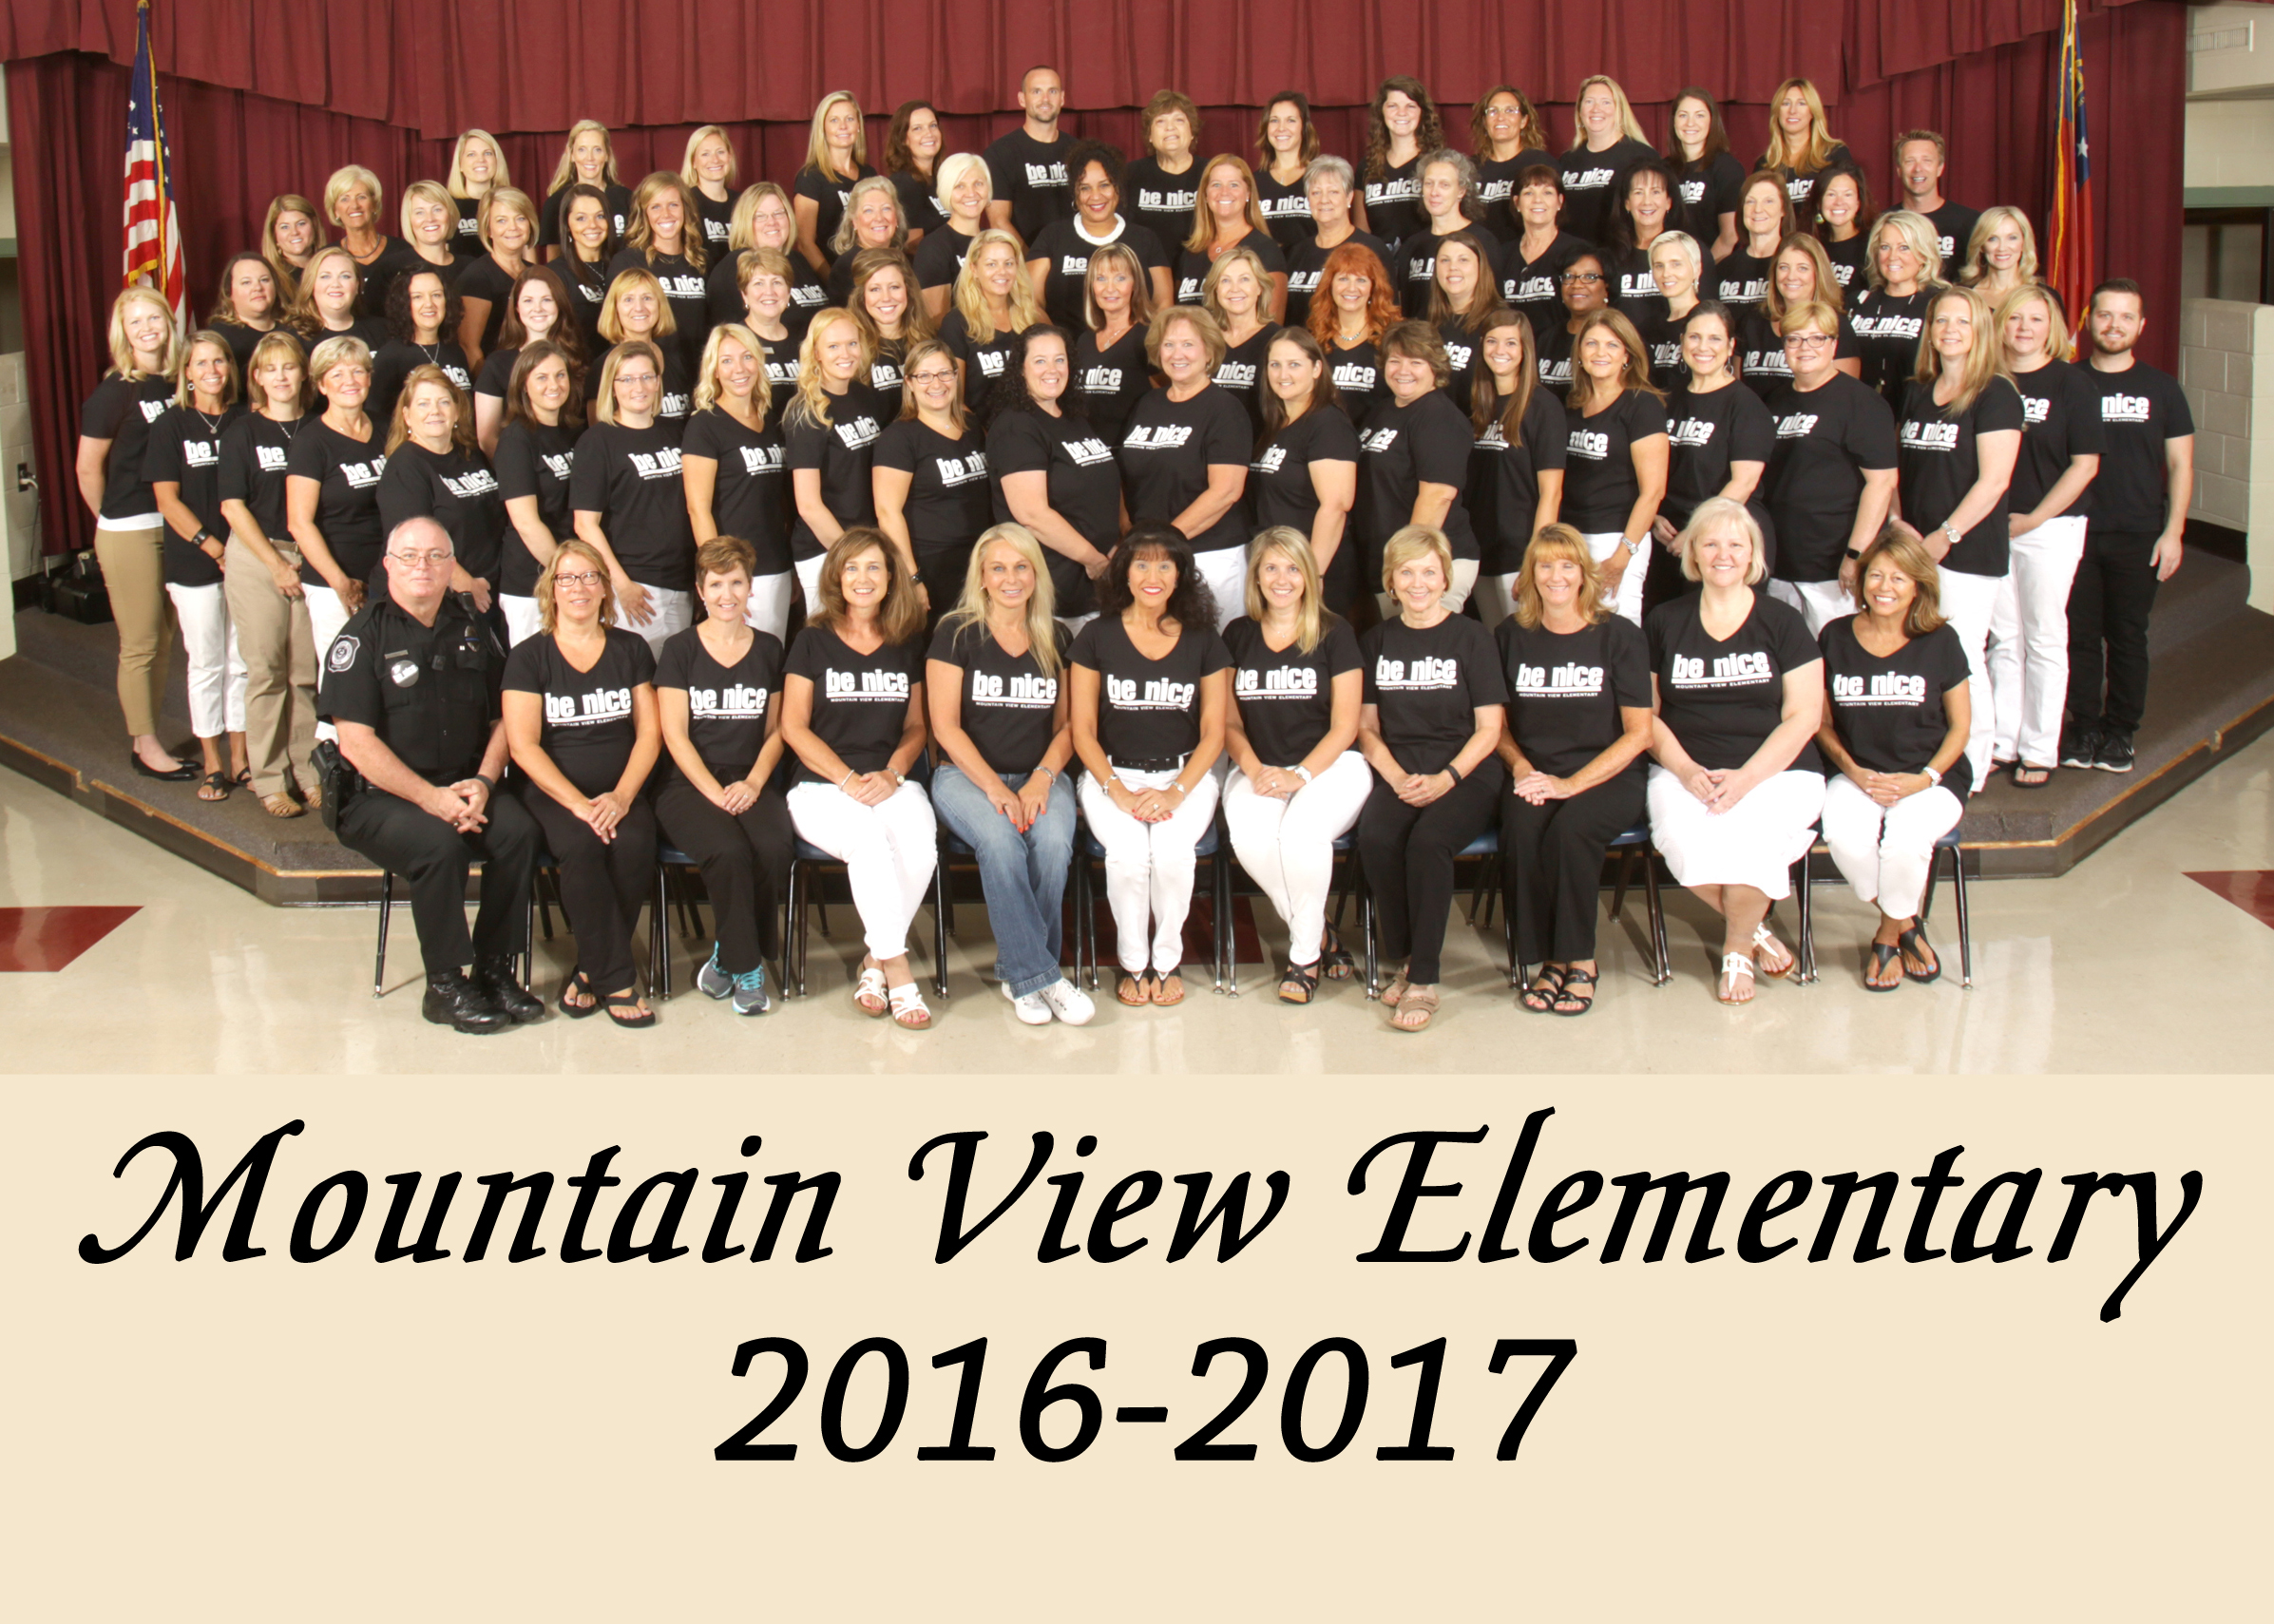 This Year Mountain View Has Launched A Campaign Titled Be Nice The Teachers And Staff Wear Buttons Or Shirts That Promote Our Campaign